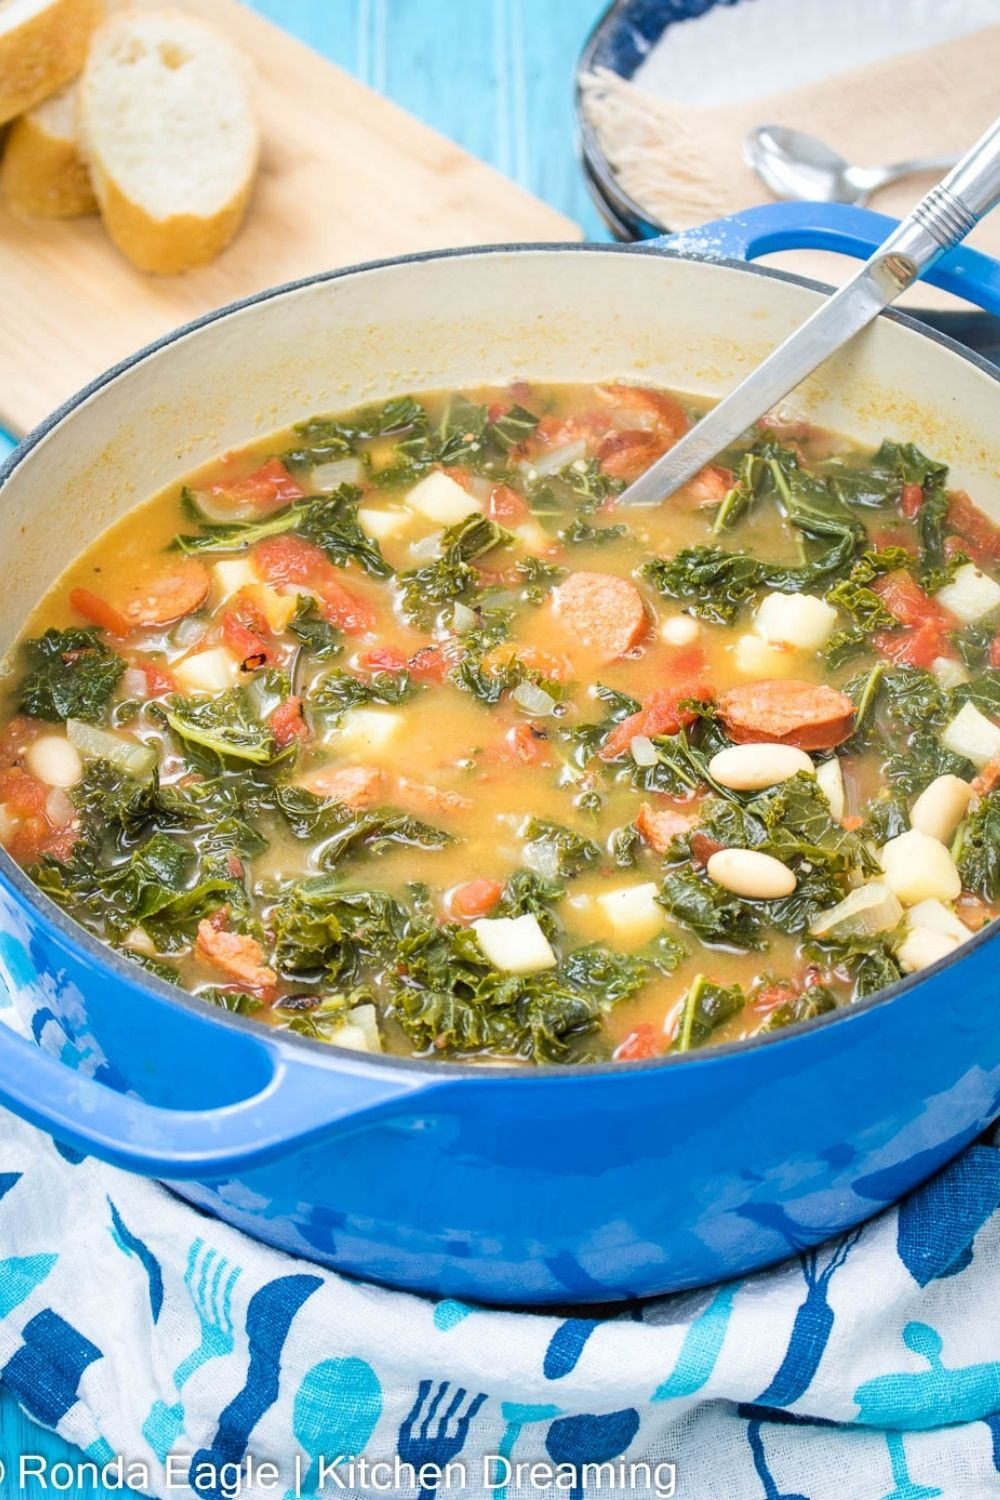 Portuguese Sausage and Kale Soup Caldo Verde Recipe 3